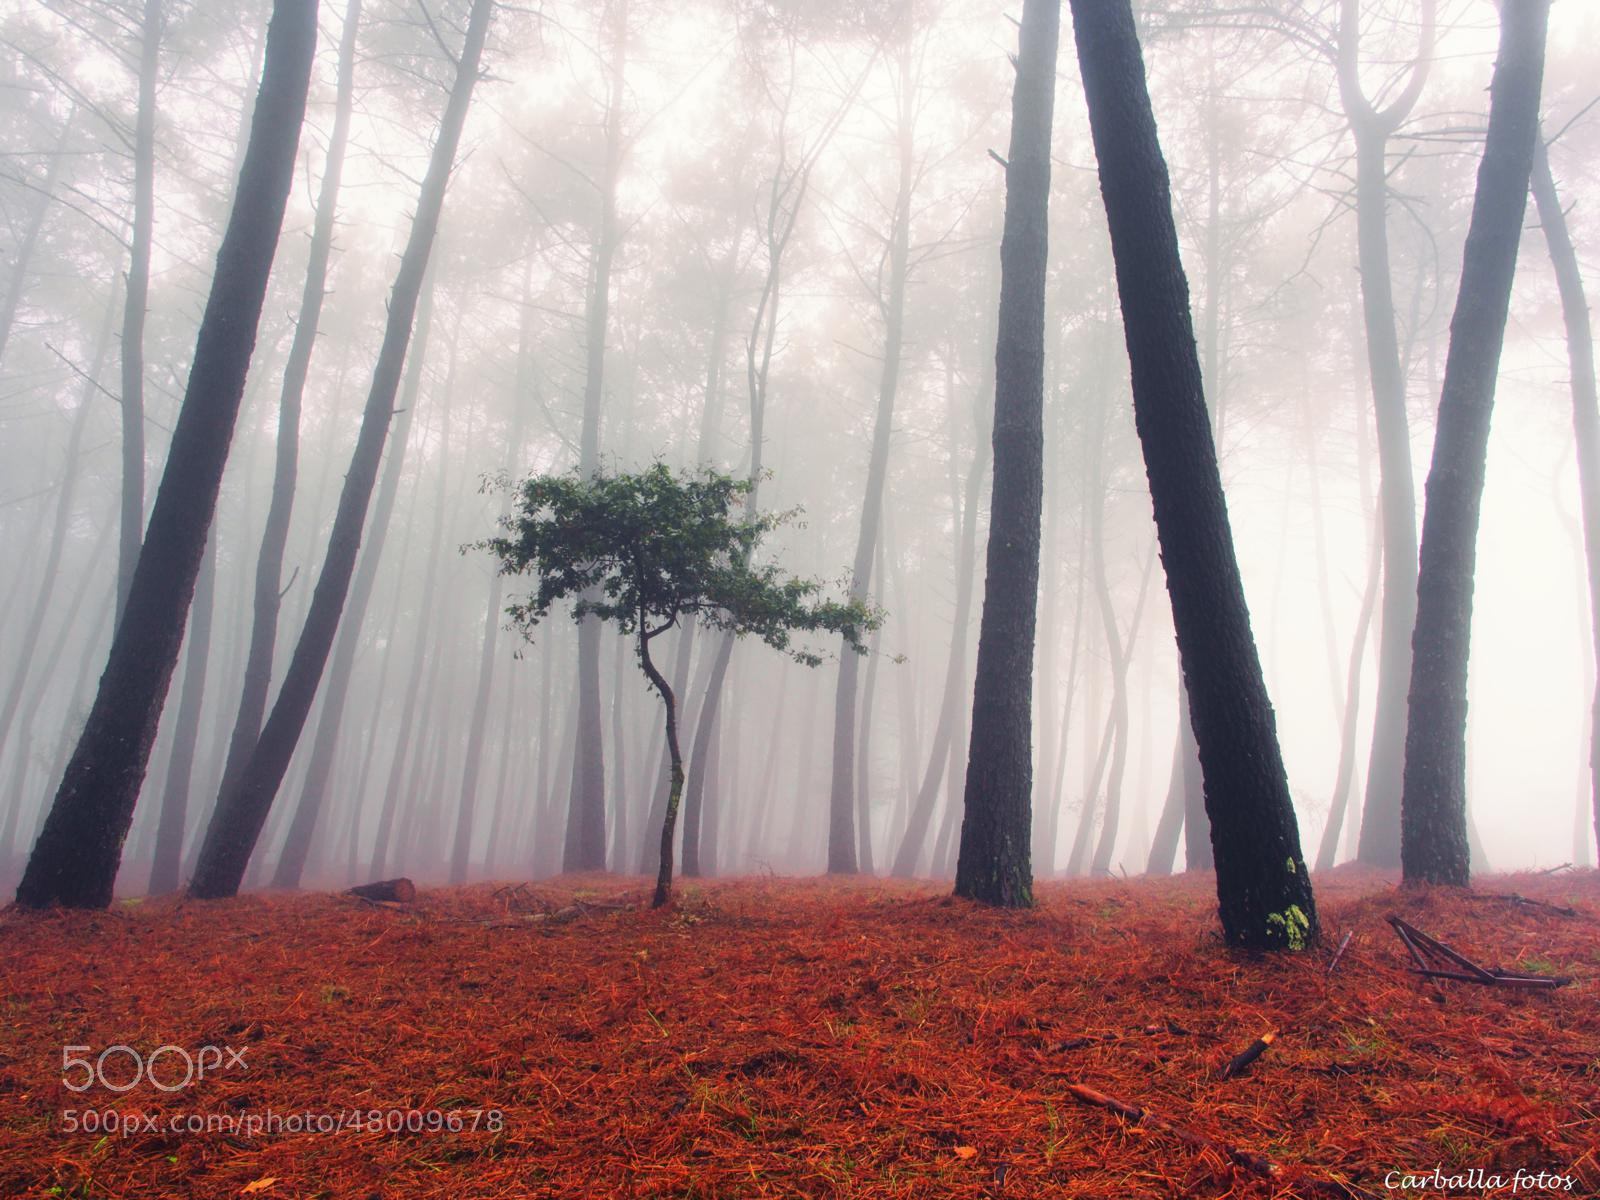 Photograph Alone in the Crowd by Guillermo  Carballa on 500px